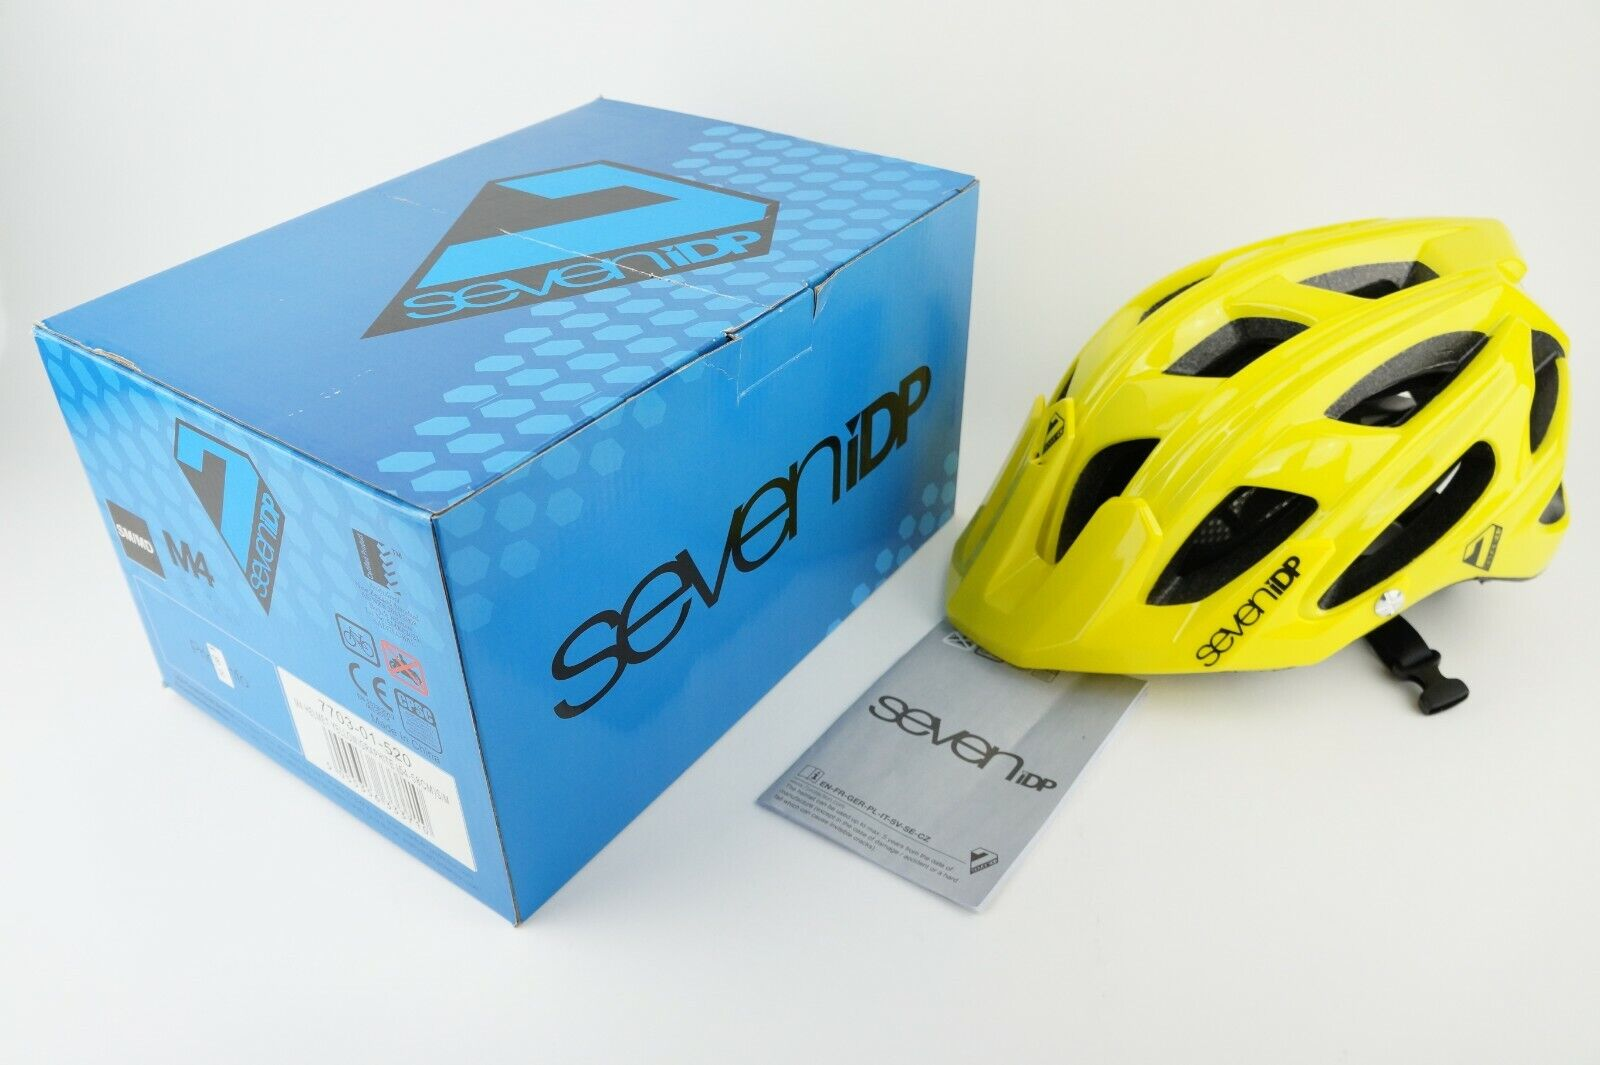 SeveniDP M4 MTB Yellow Graphite Mountain  Bike Bicycle Helmet  90 MSRP  new branded